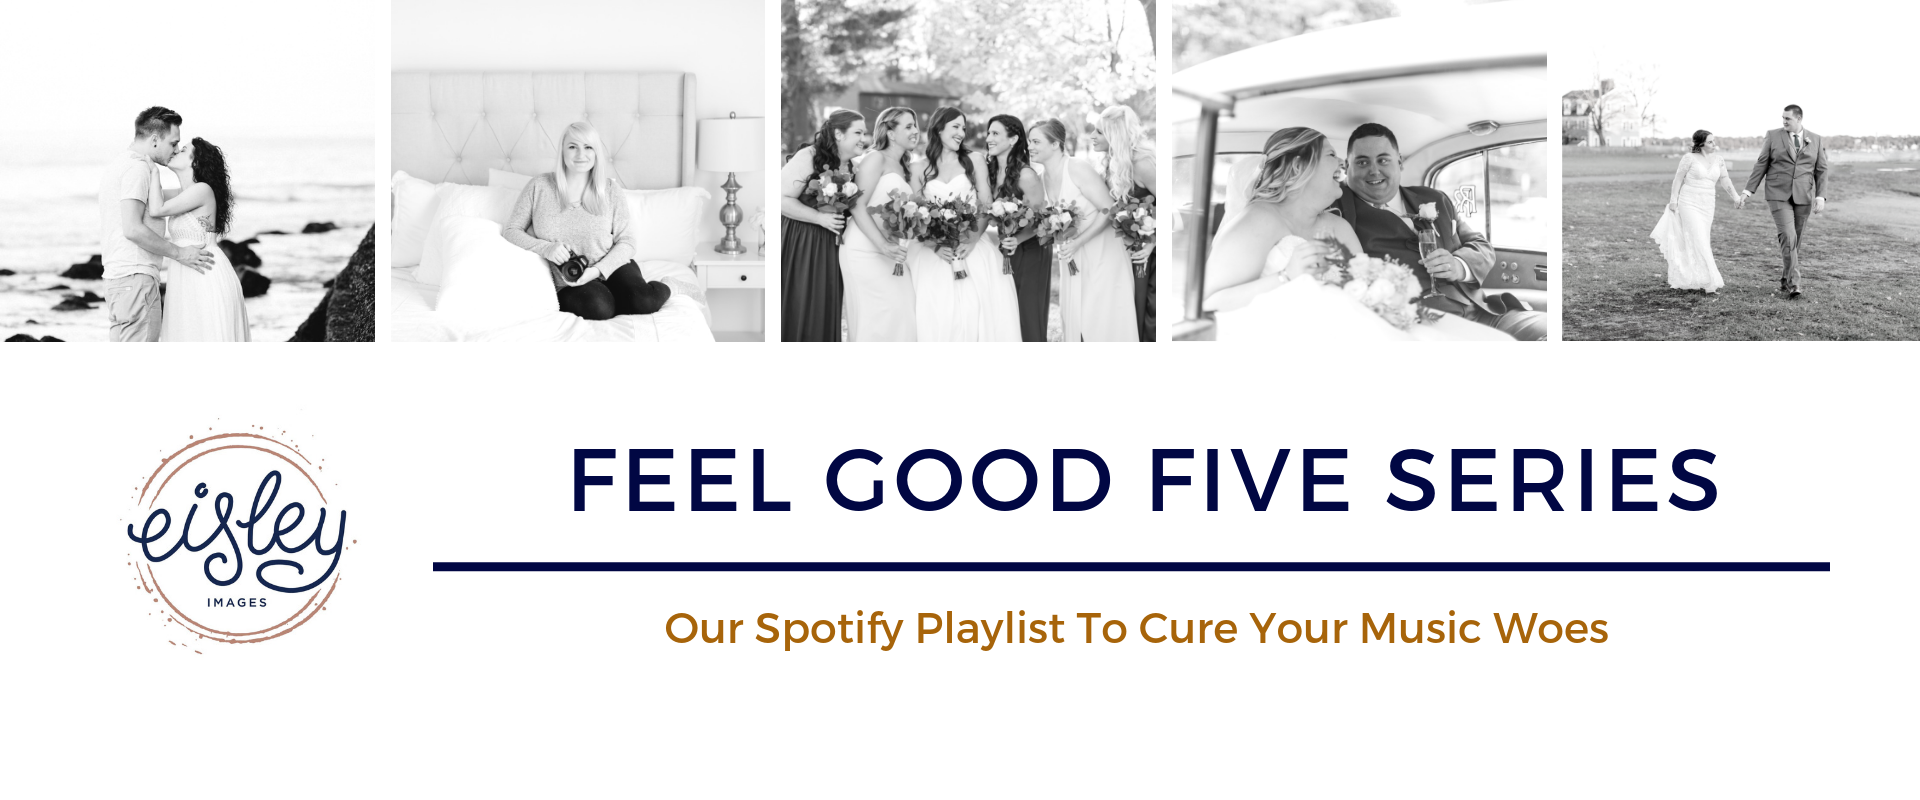 eisley images spotify playlist work creative feel good